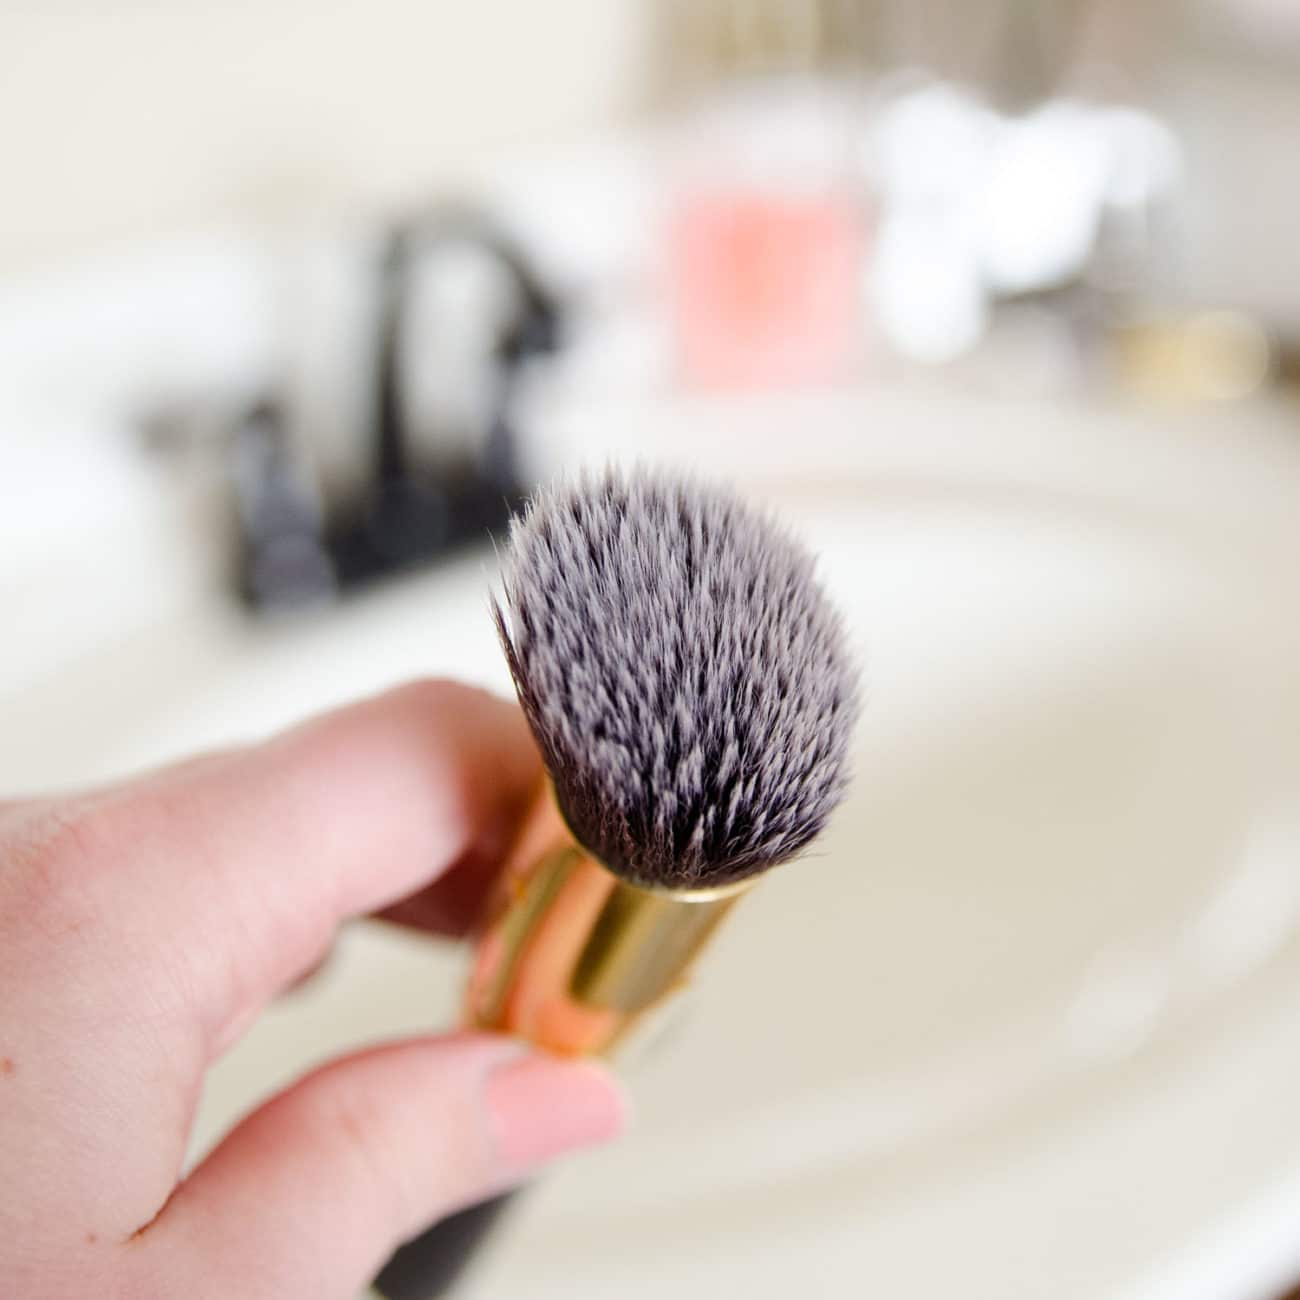 Make up brush after cleaning.